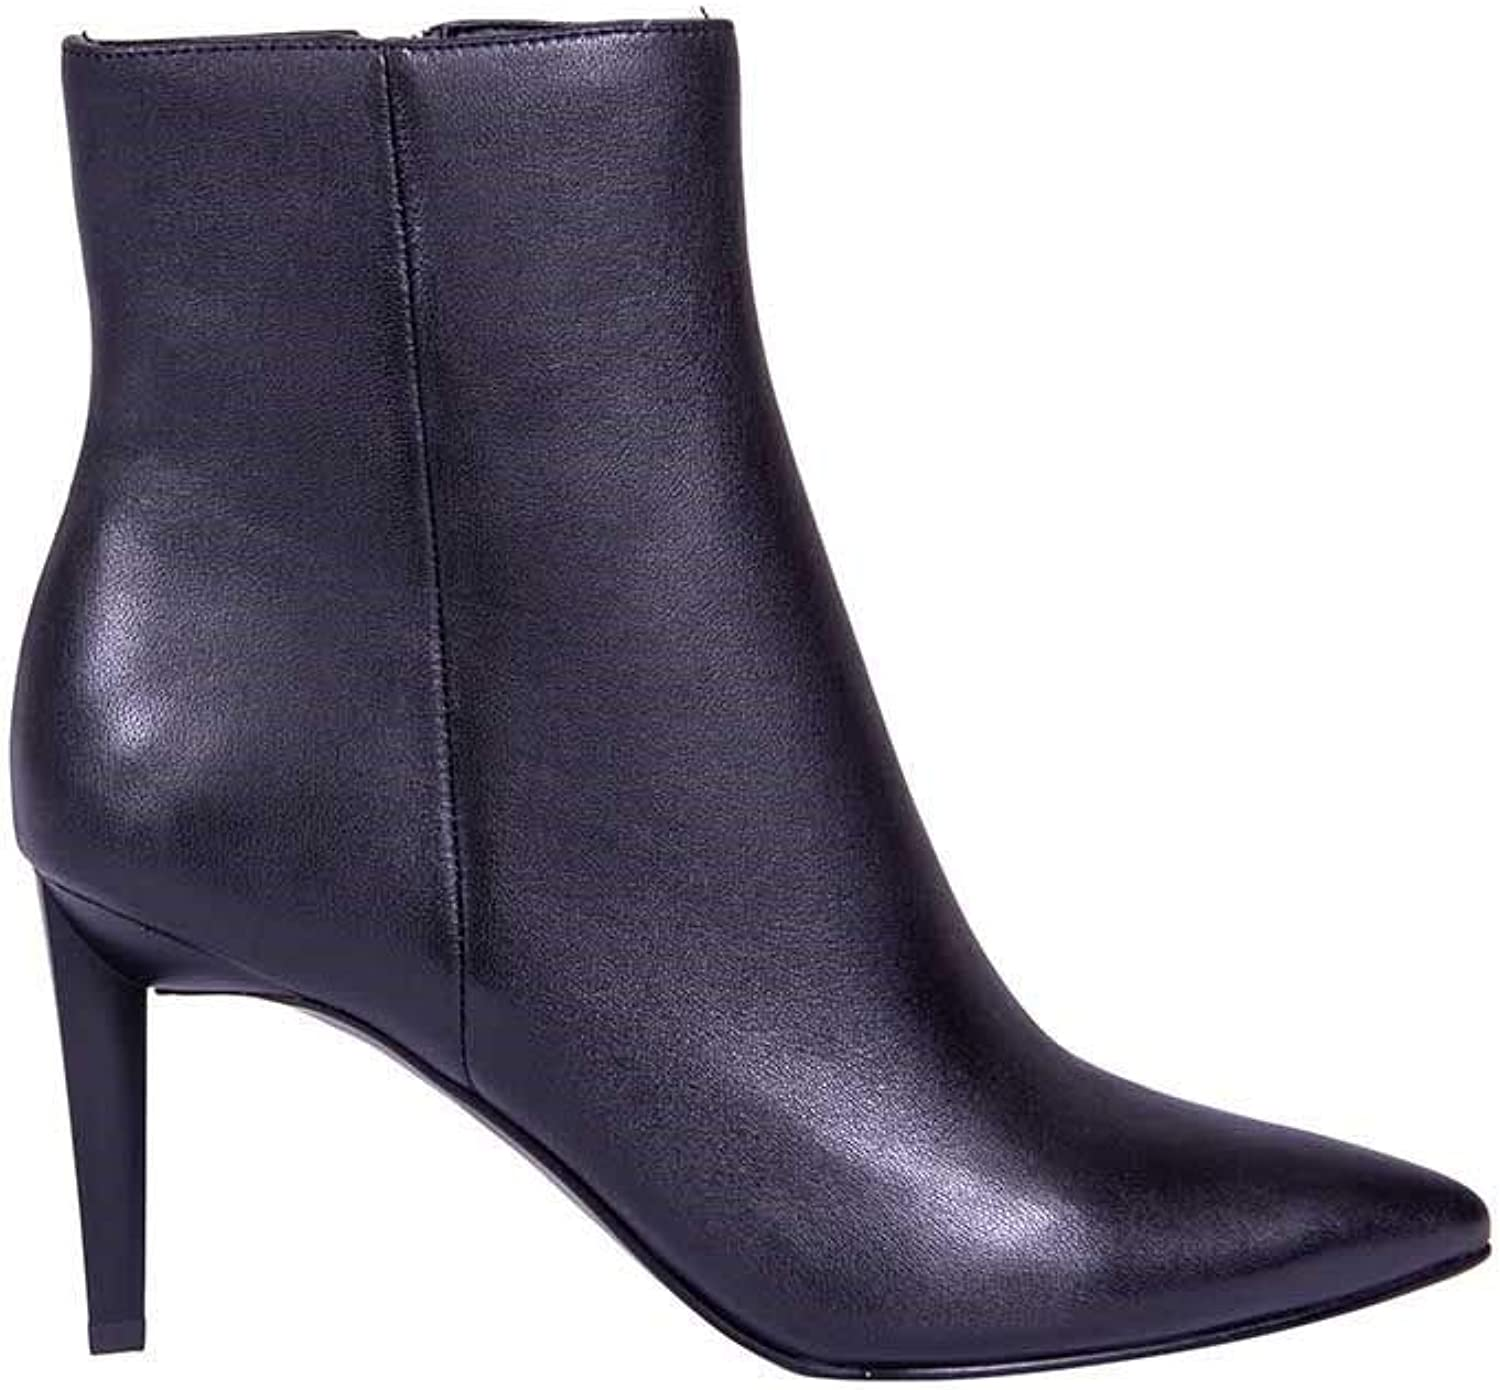 KENDALL + KYLIE Women's KKZOE07BLACK Black Leather Ankle Boots